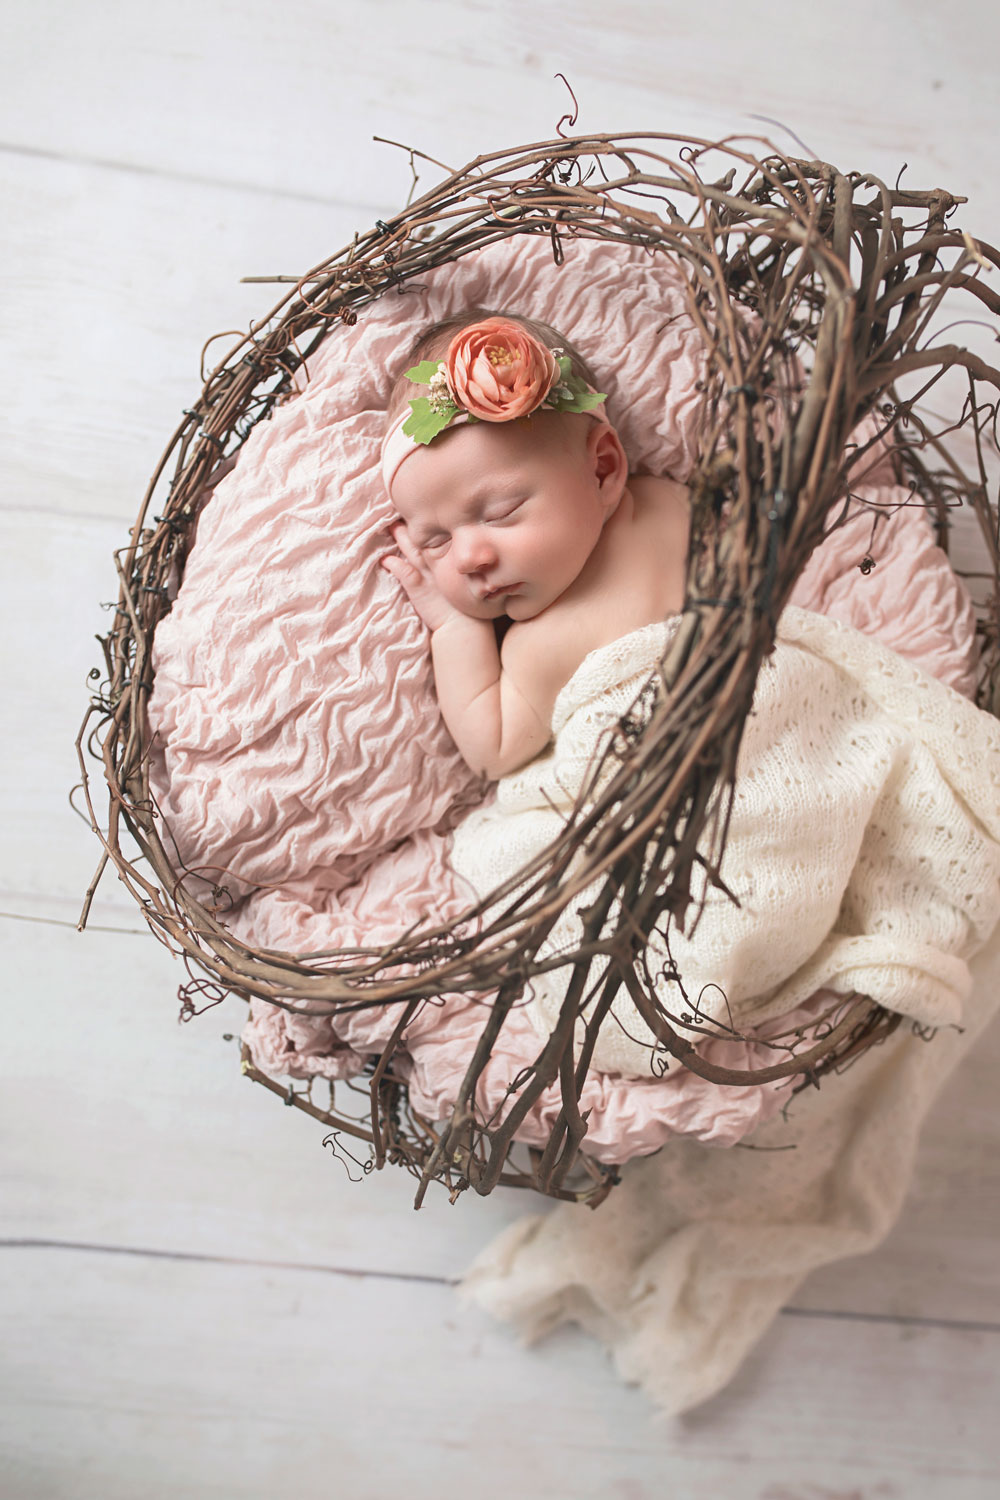 knoxville-tn-newborn-photographer-baby-in-basket.jpg